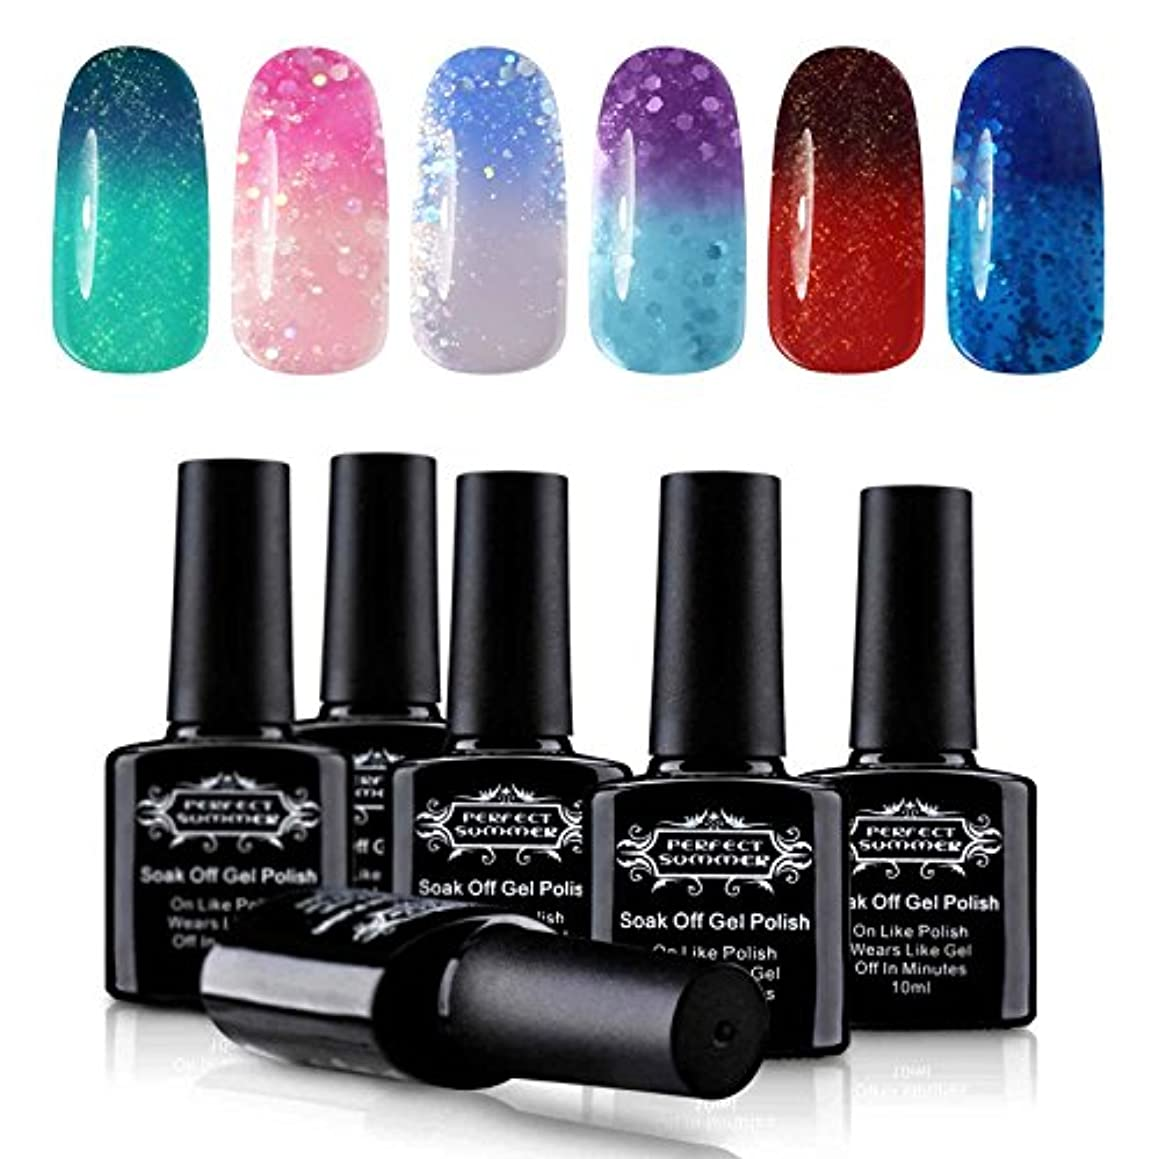 Perfect Summer Soak Off Gel Polish - Temperature Changing Color Nail Gel Polish UV LED Manicure, Pack of 6PCS, 10ml Each #03